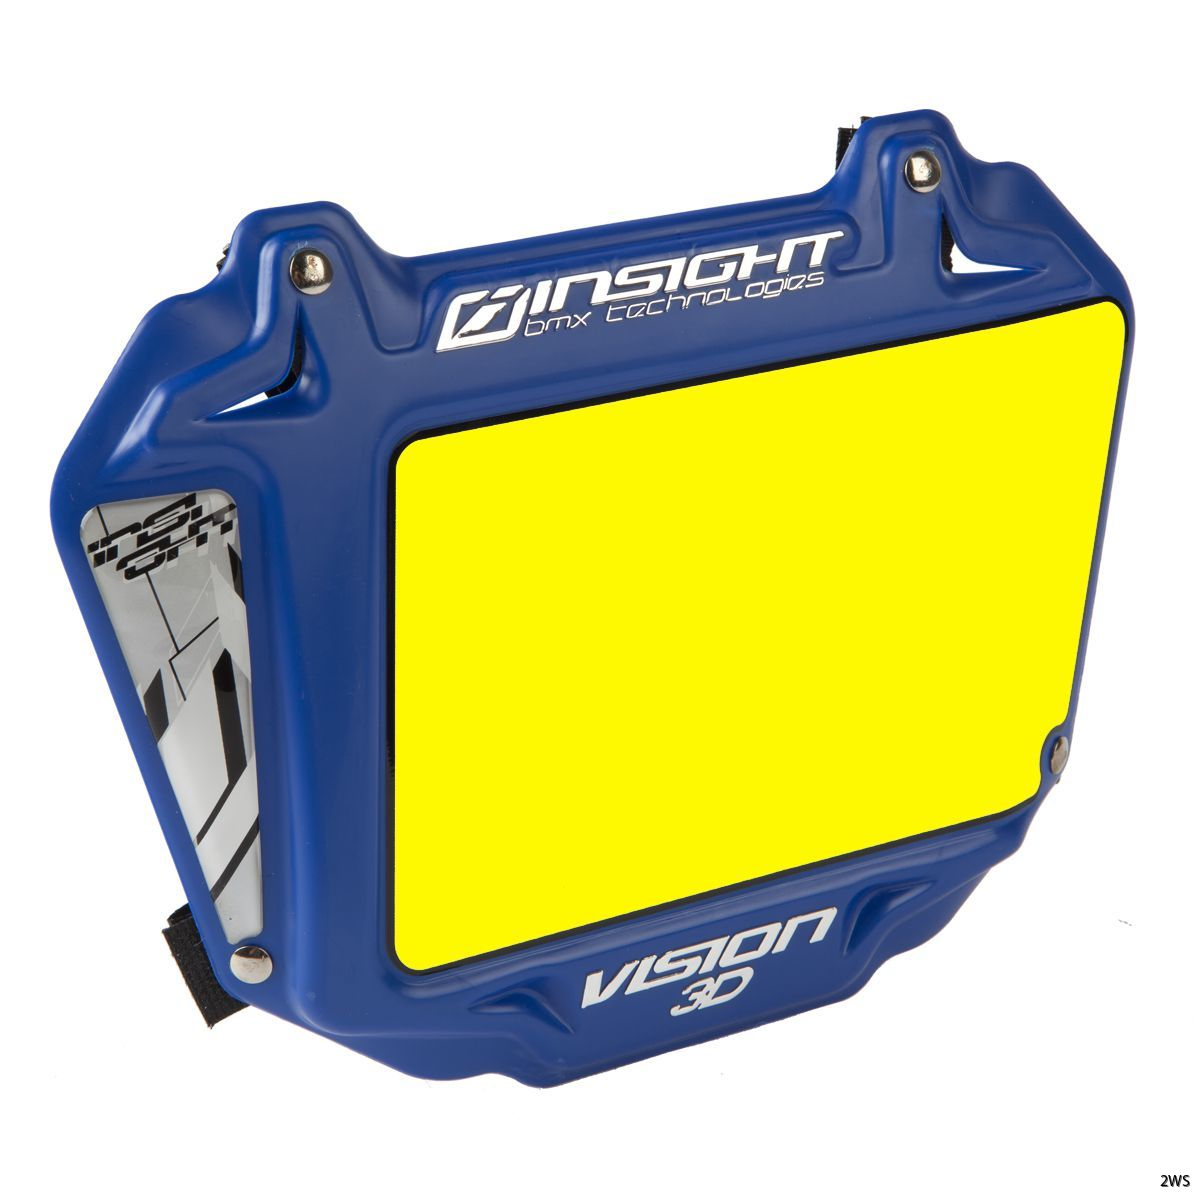 insight-number-plate-vision-3d-expert-yellow-bg_blå